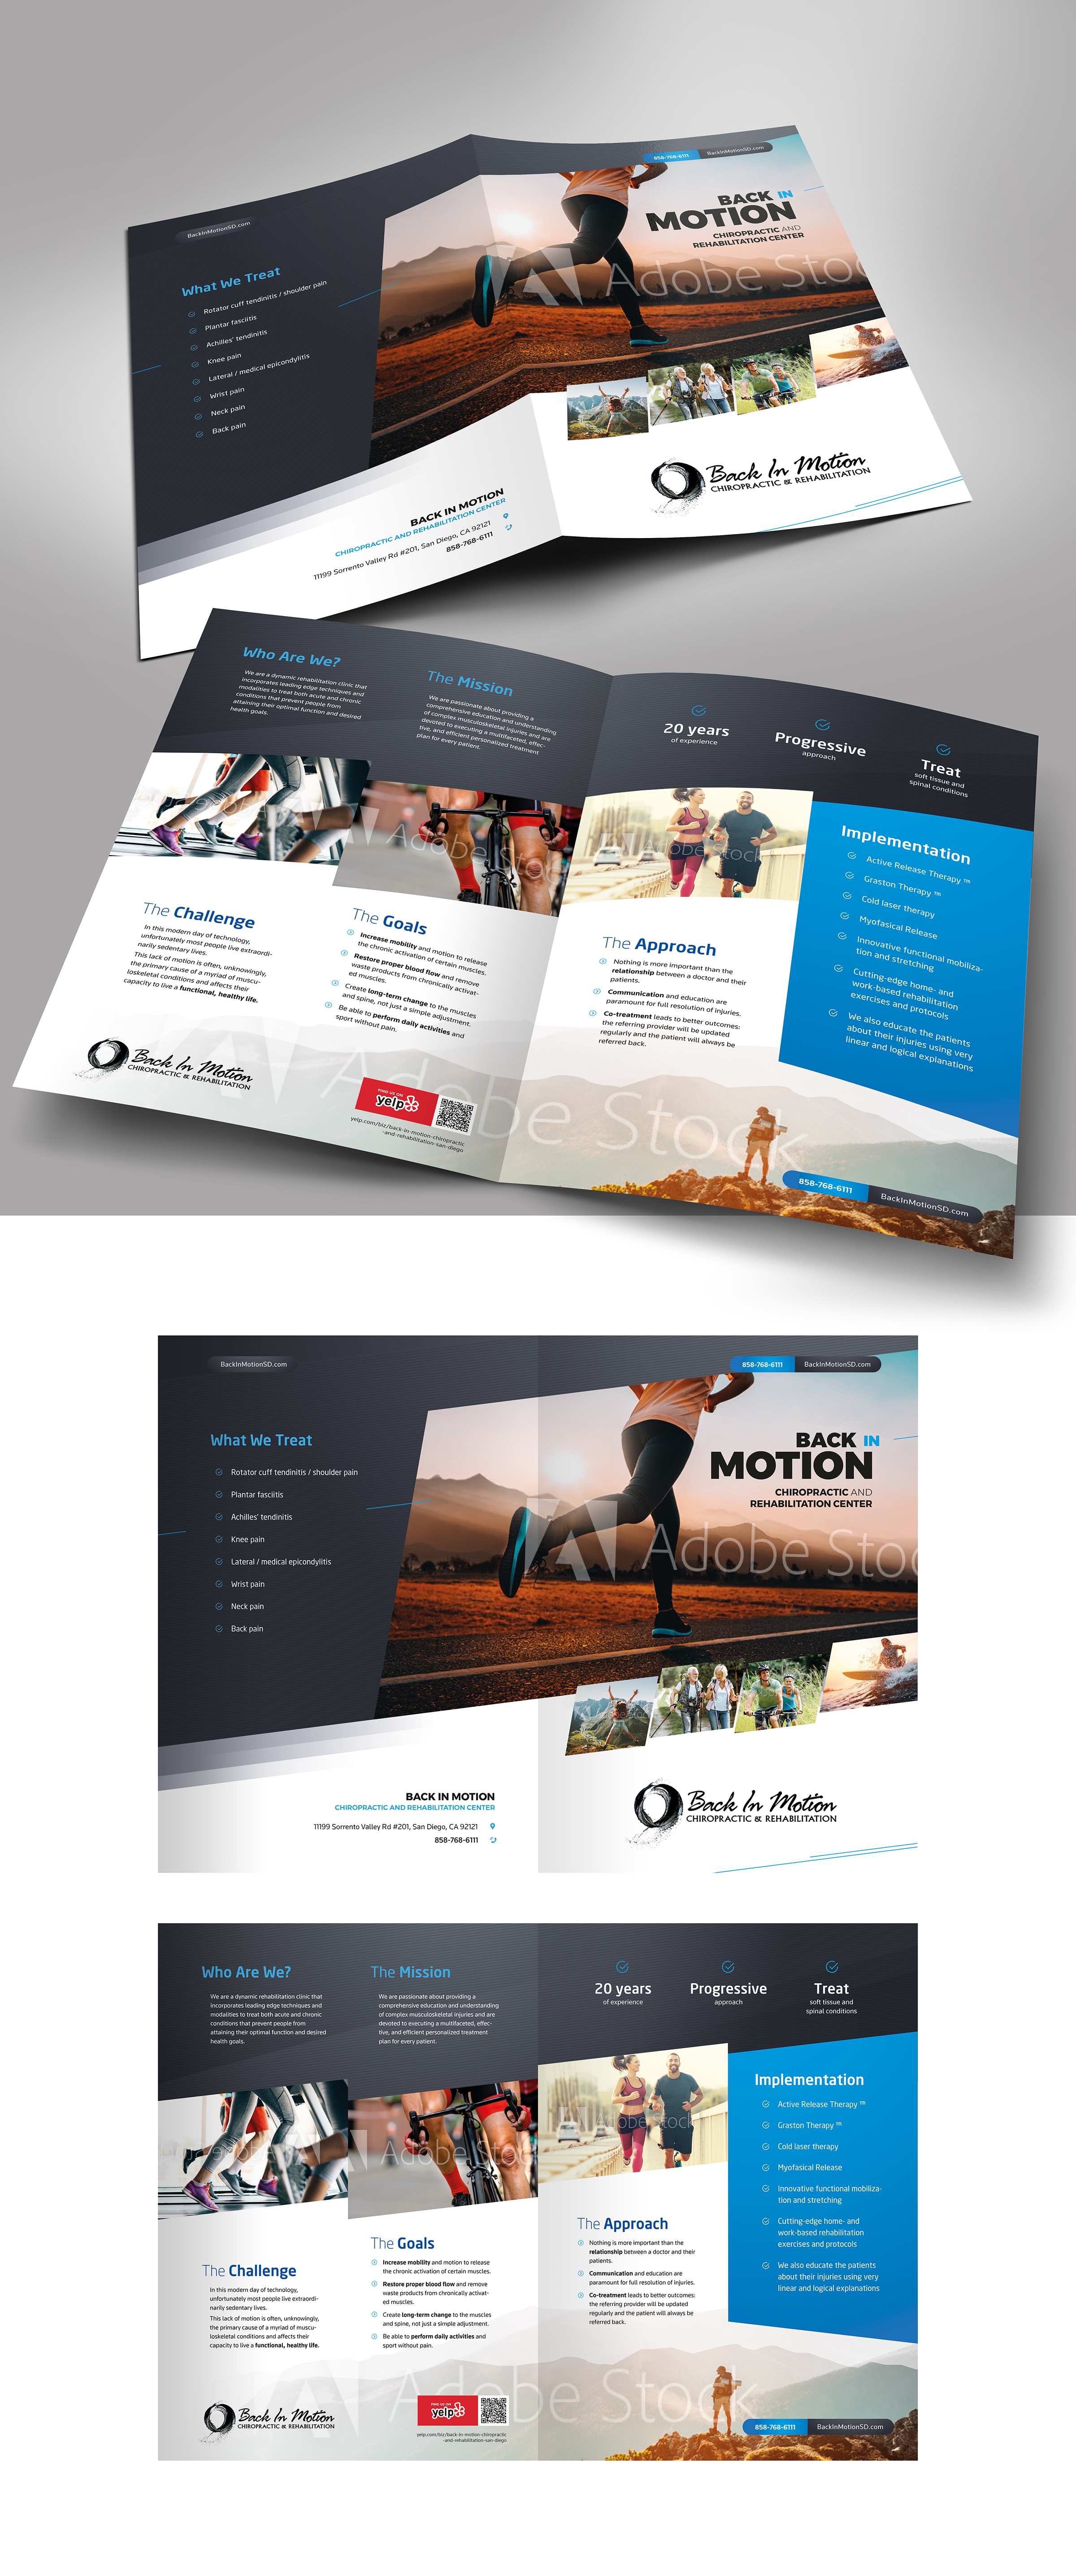 Design an eye-catching and modern brochure for Back in Motion rehab clinic